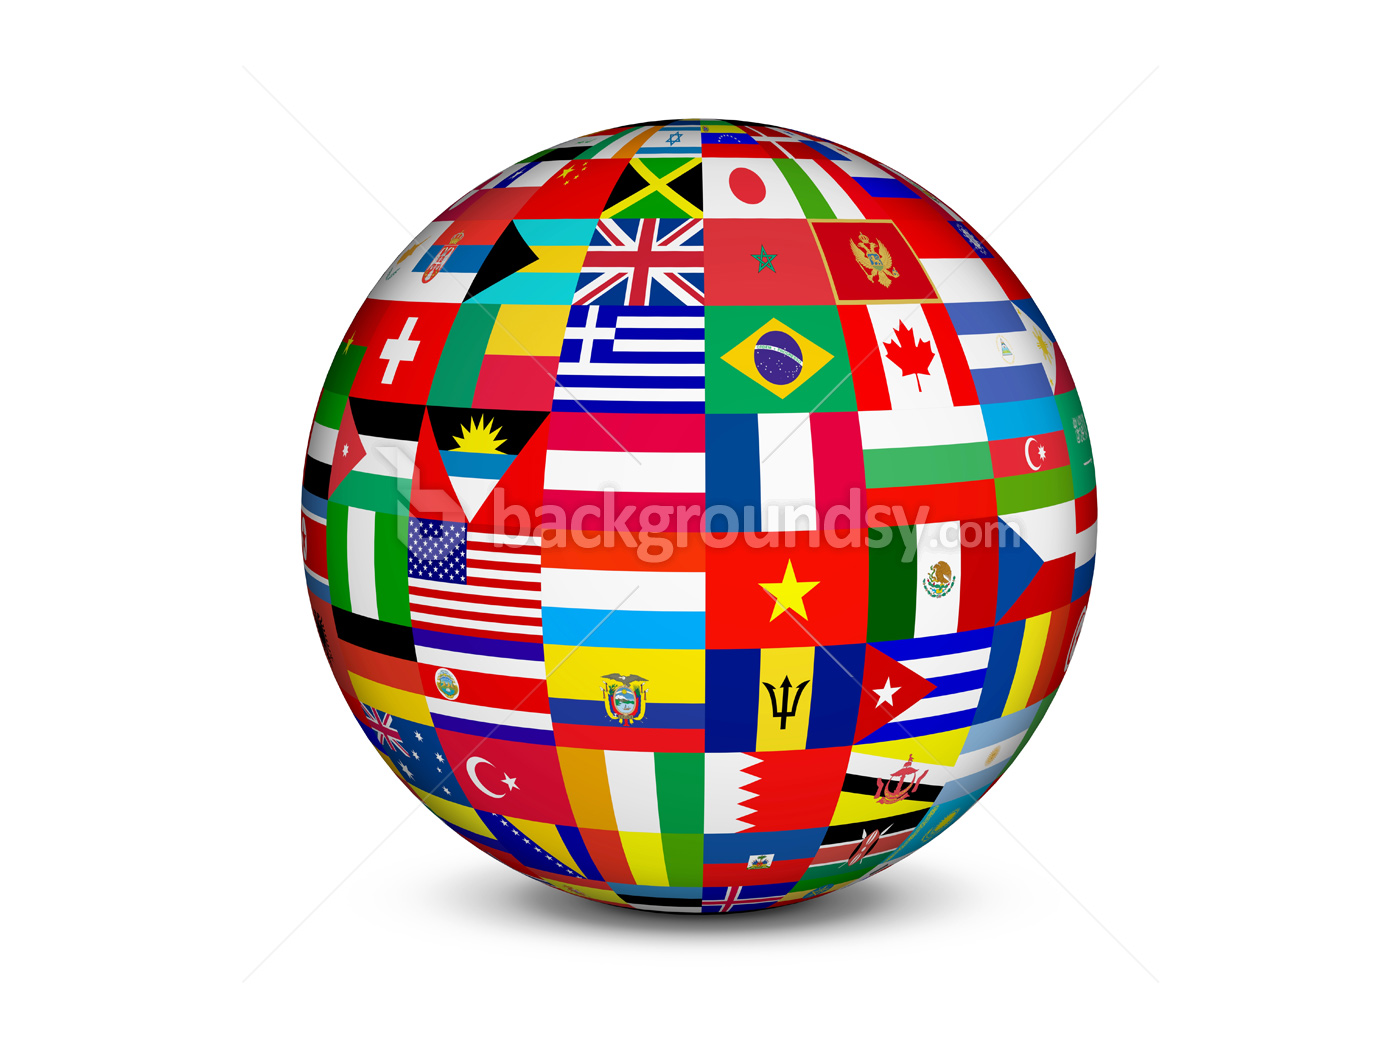 http://www.backgroundsy.com/file/preview/world-flags-globe.jpg